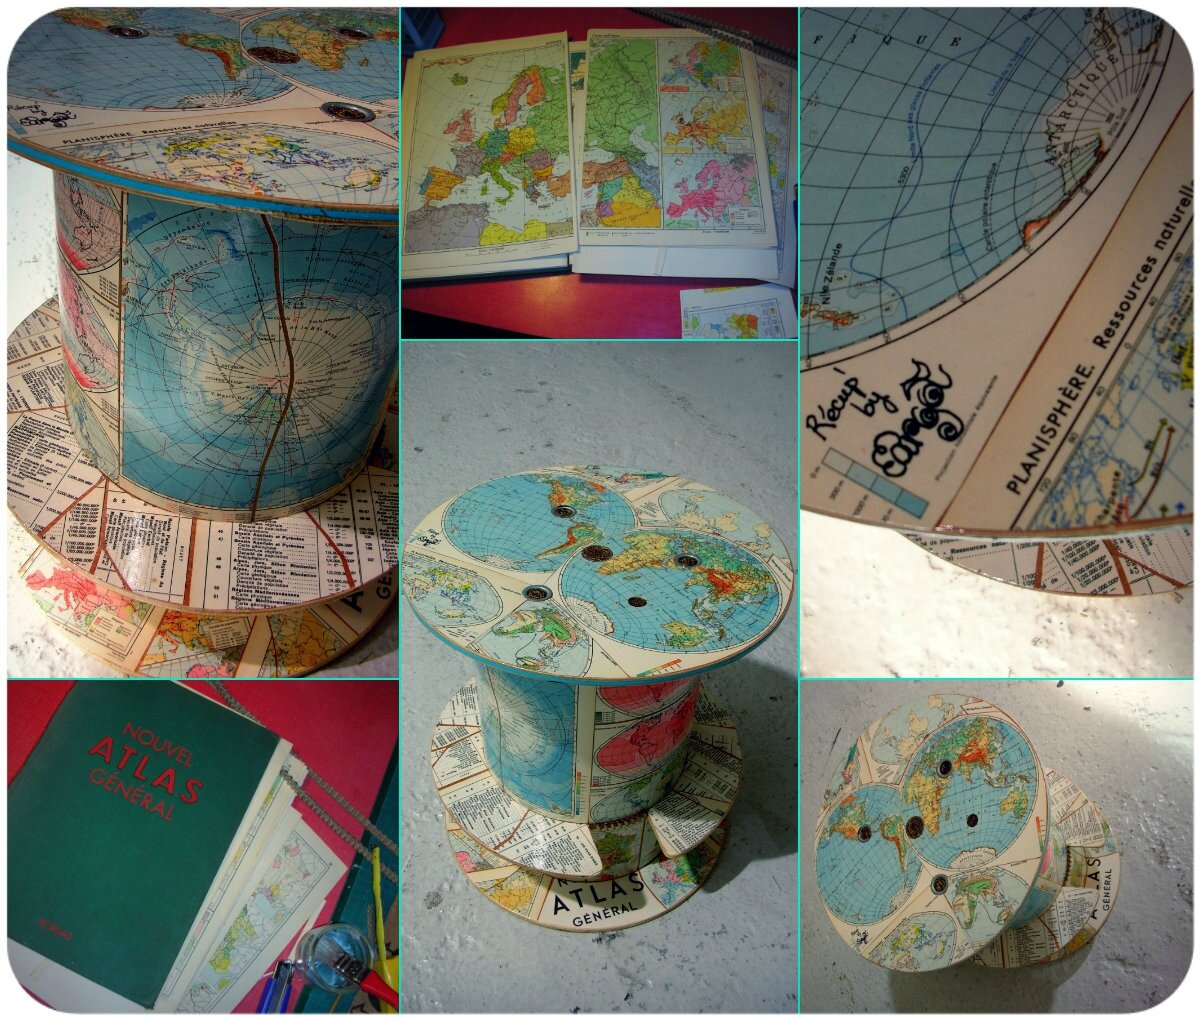 Le touret atlas collage d 39 un vieil atlas de 1958 photo de les tourets l 39 atelier r cup - Que faire avec un touret ...